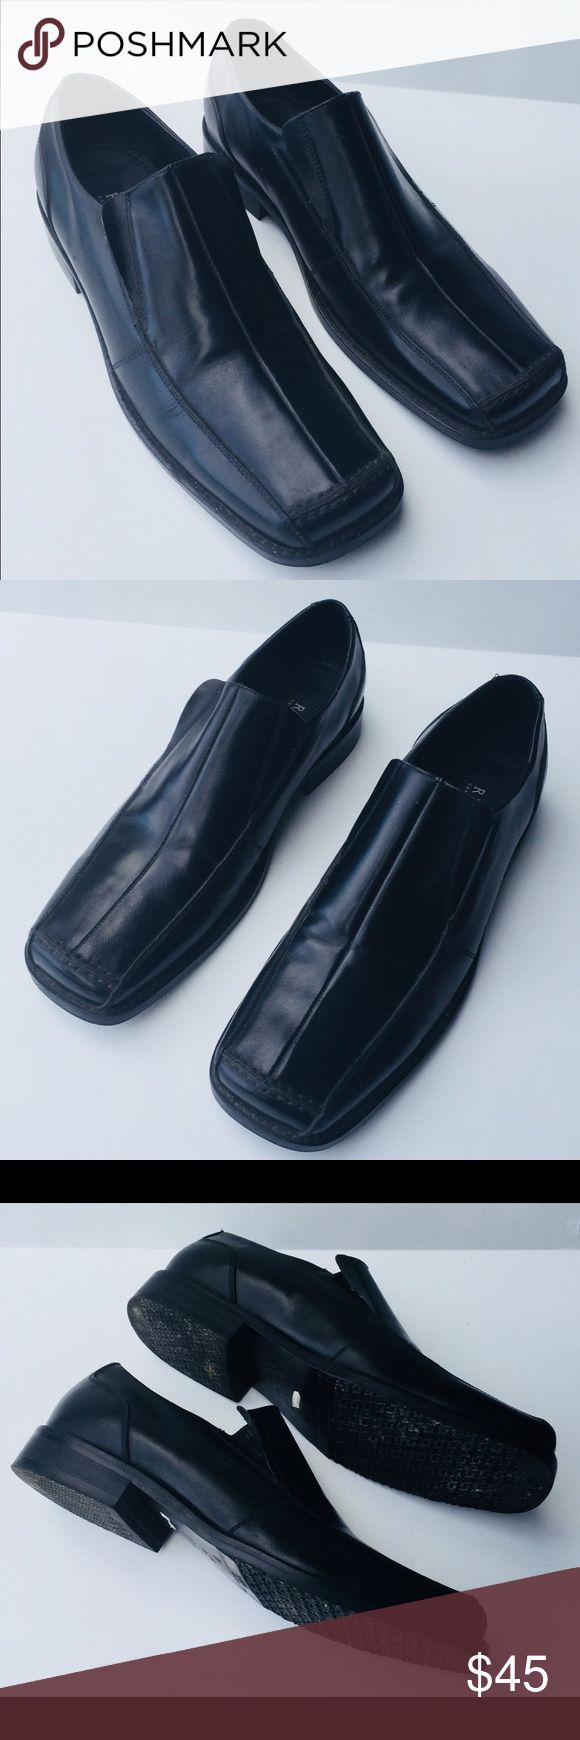 Gordon Rush Leather Mens Dress Shoes Size 9.5 Preowned in great condition. Its Genuine leather in Size 9.5 Gordon Rush Shoes Loafers & Slip-Ons